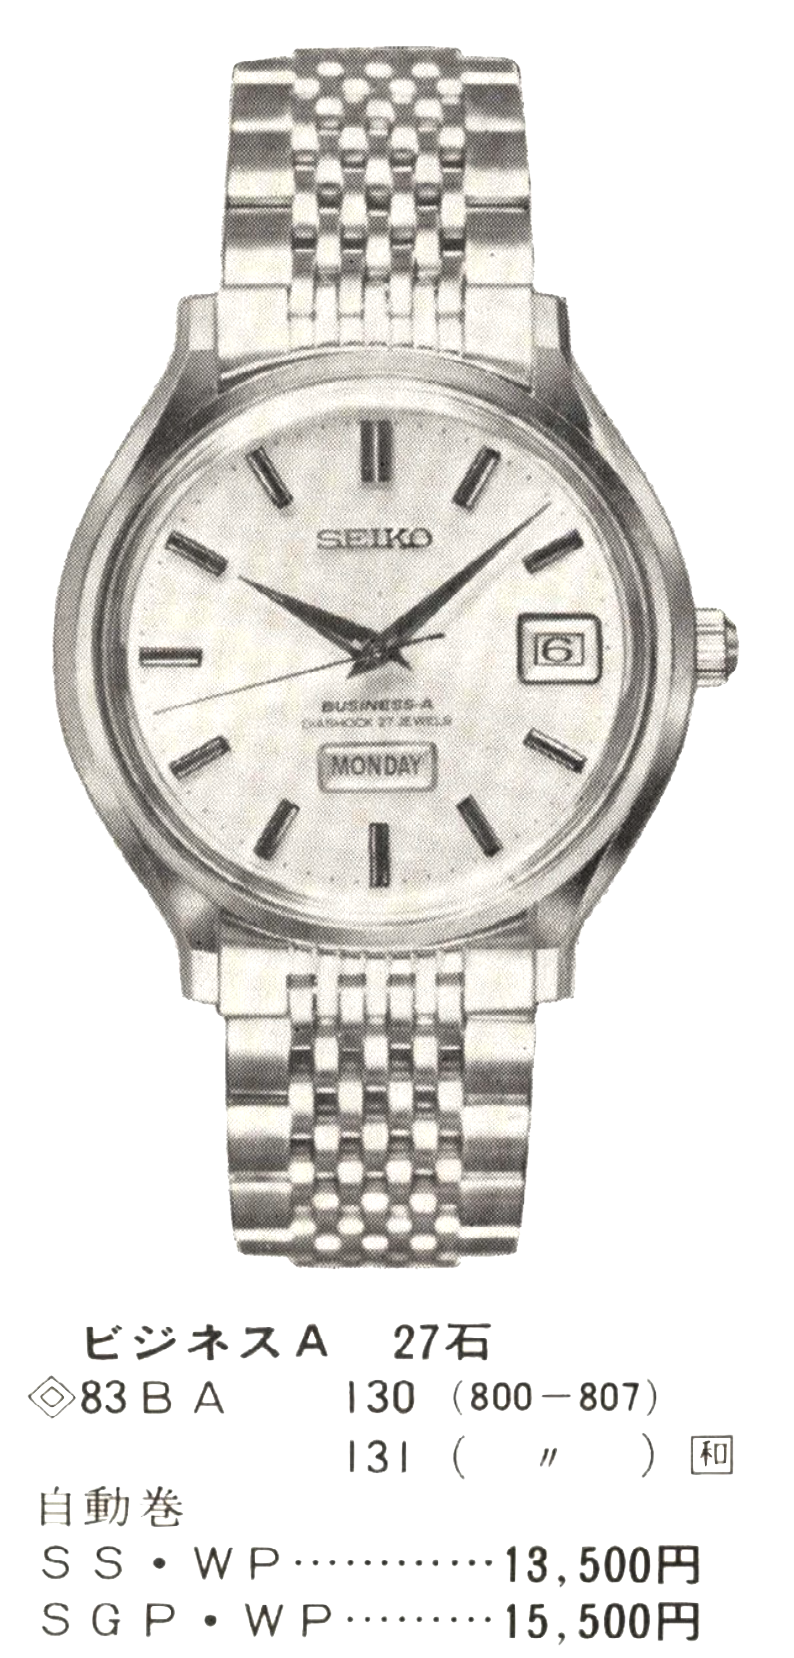 Seiko Business 8346A-8000 (83BA-130)